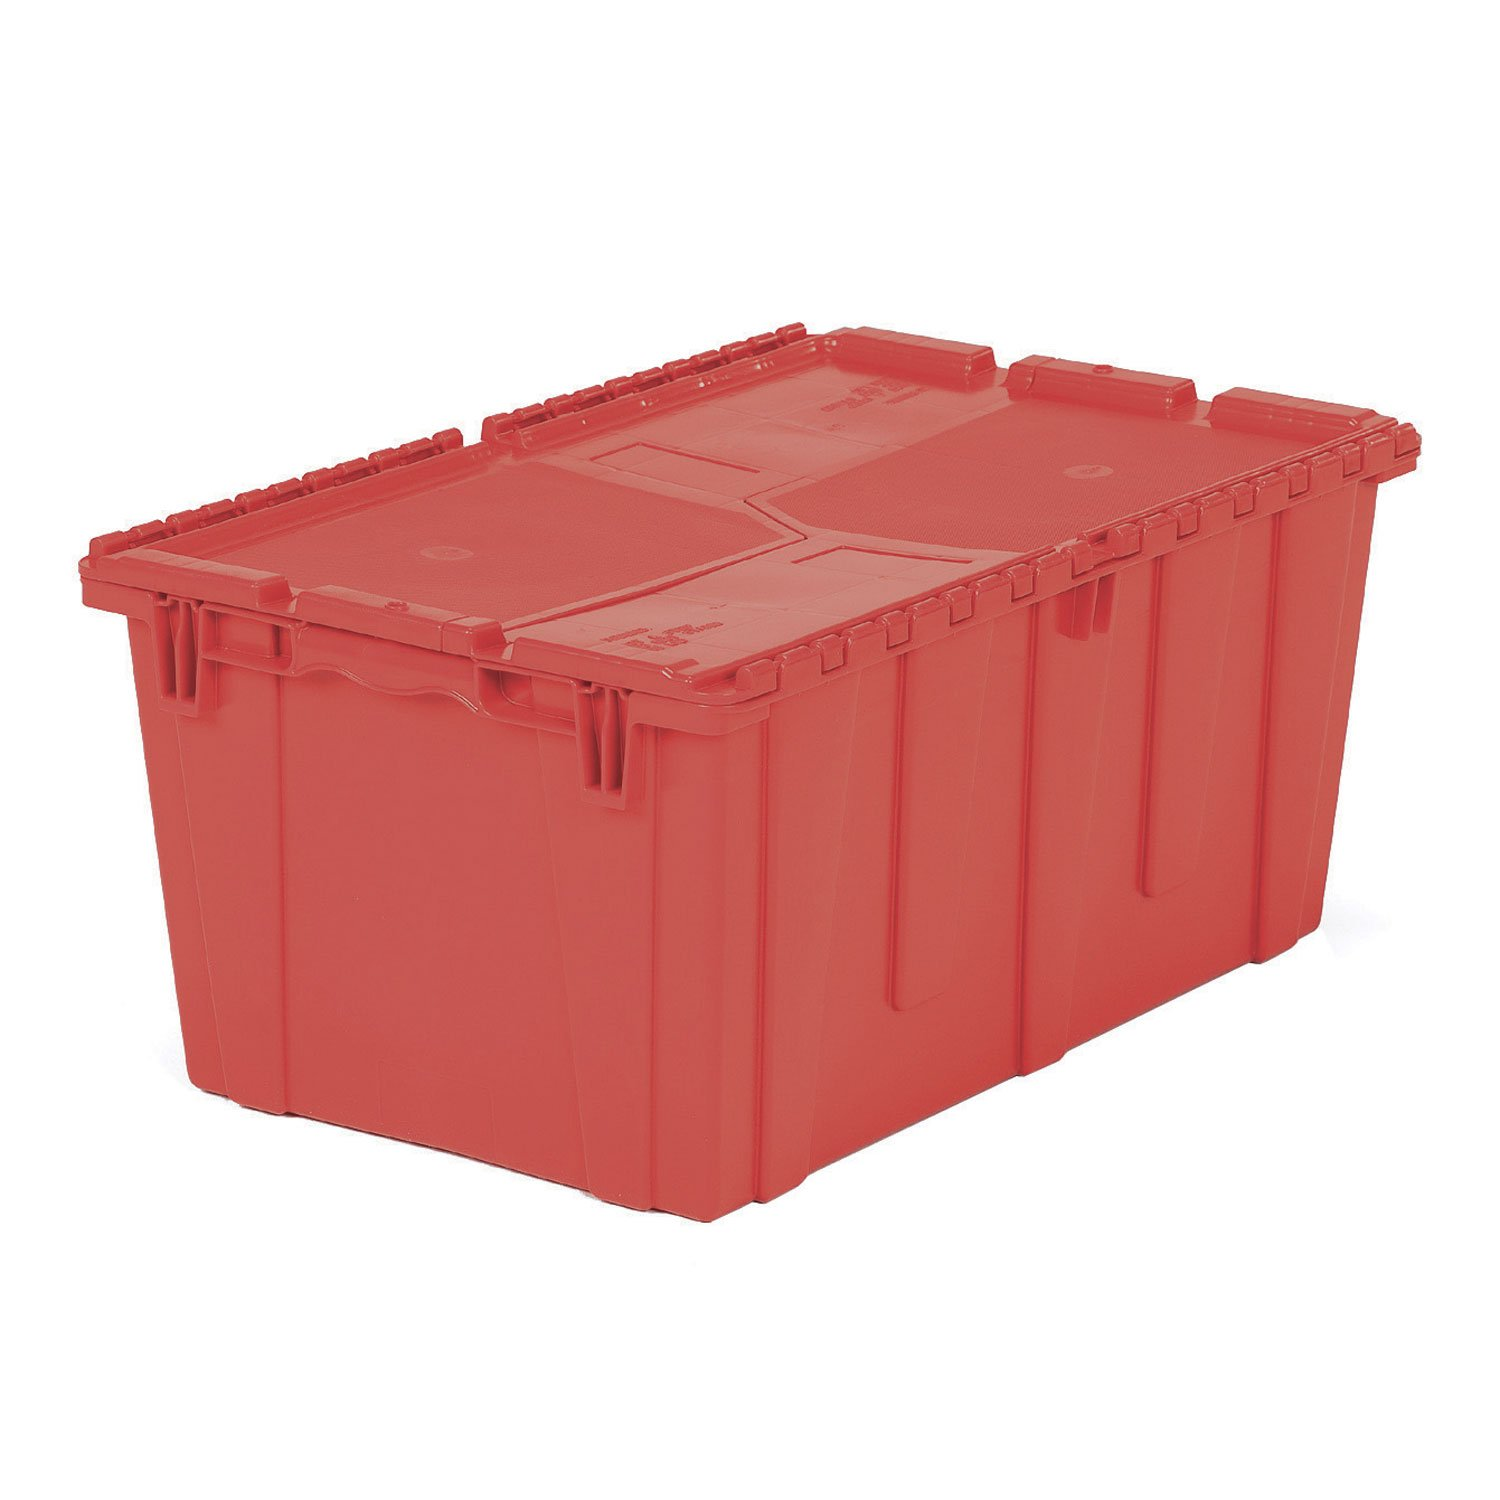 ORBIS FP243M Flipak Distribution Container - 26-7/8-17 x 12 Red - Lot of 3